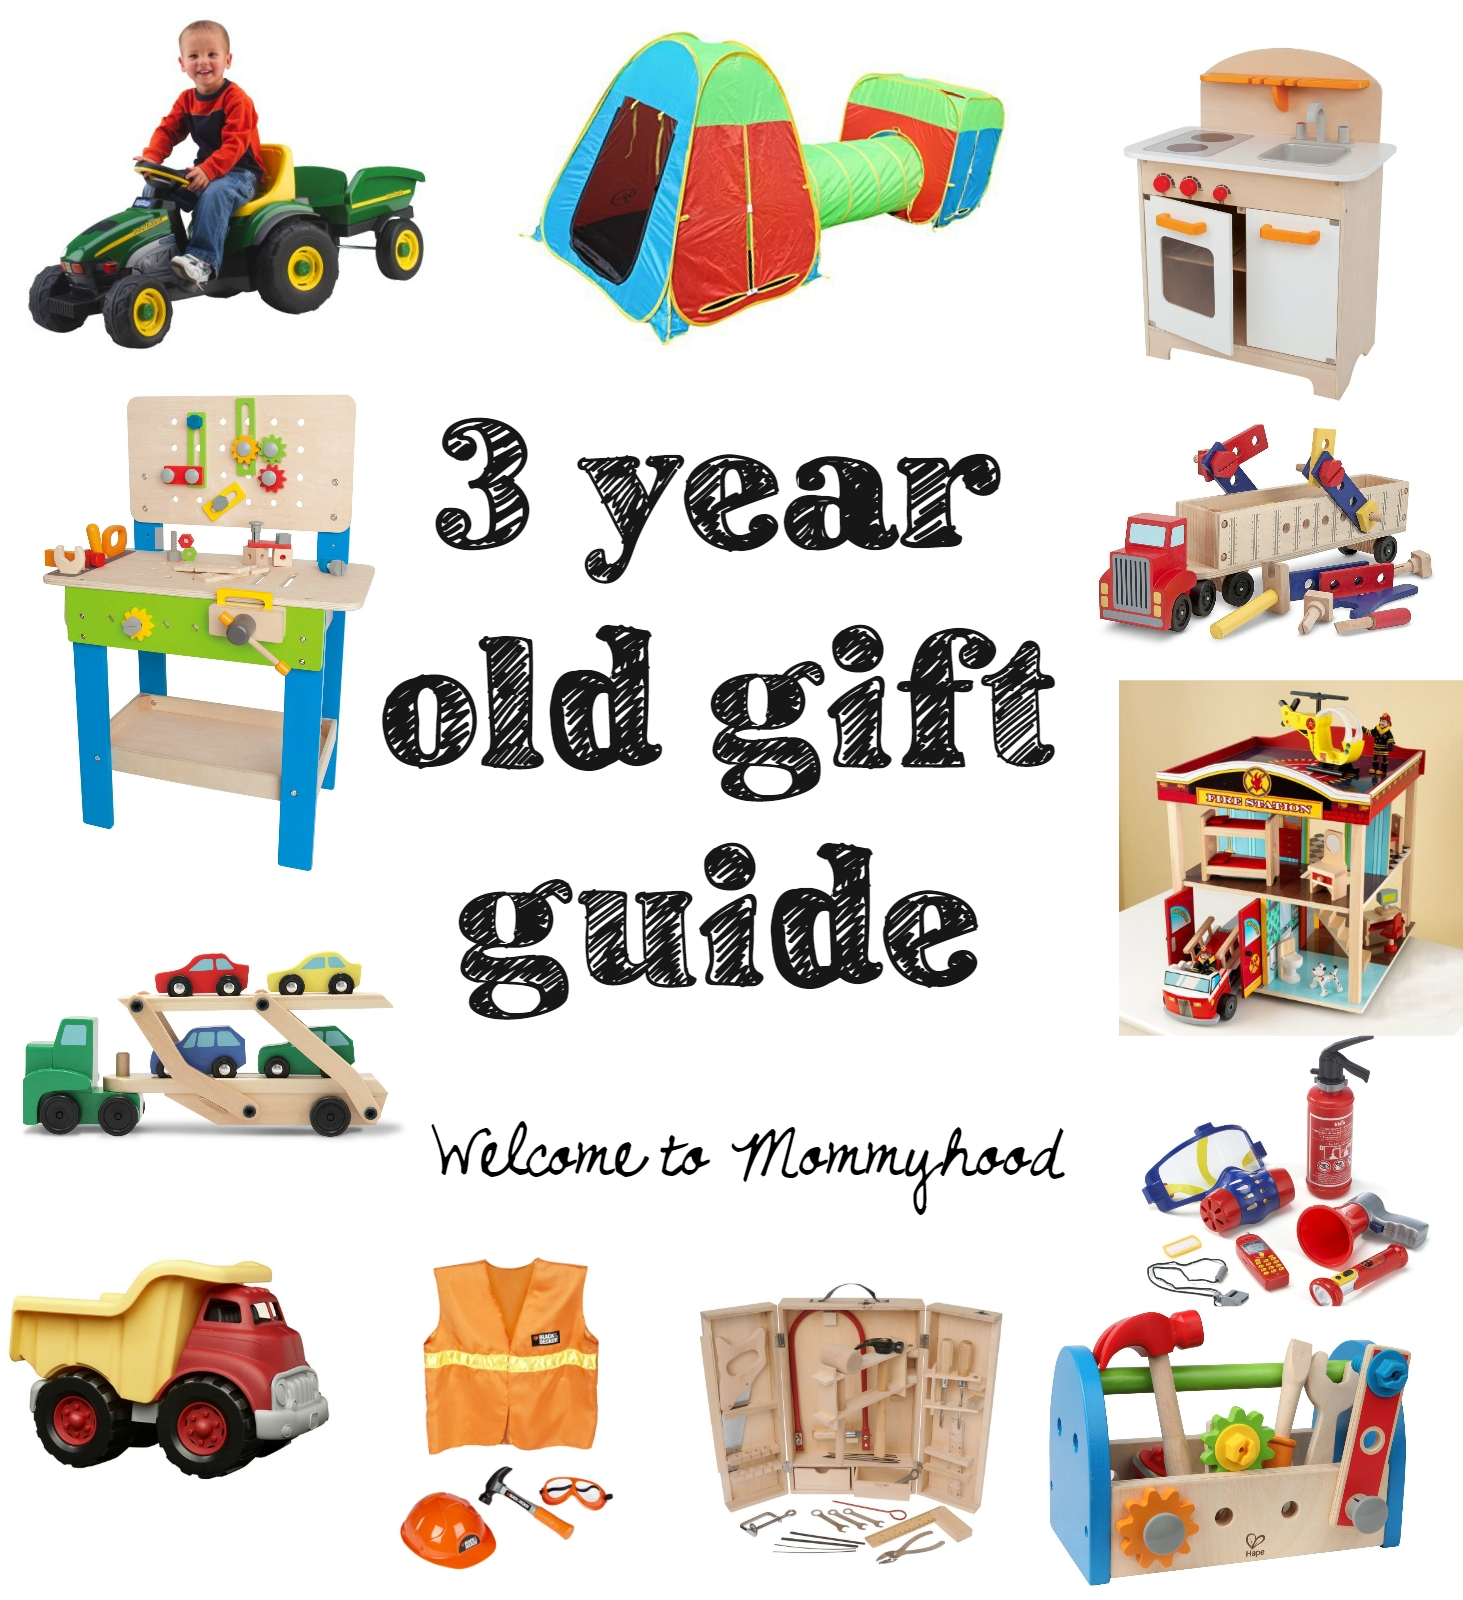 10 Unique Gift Ideas For 3 Year Old Boy birthday gift ideas for a 3 year old third gift and birthdays 17 2020